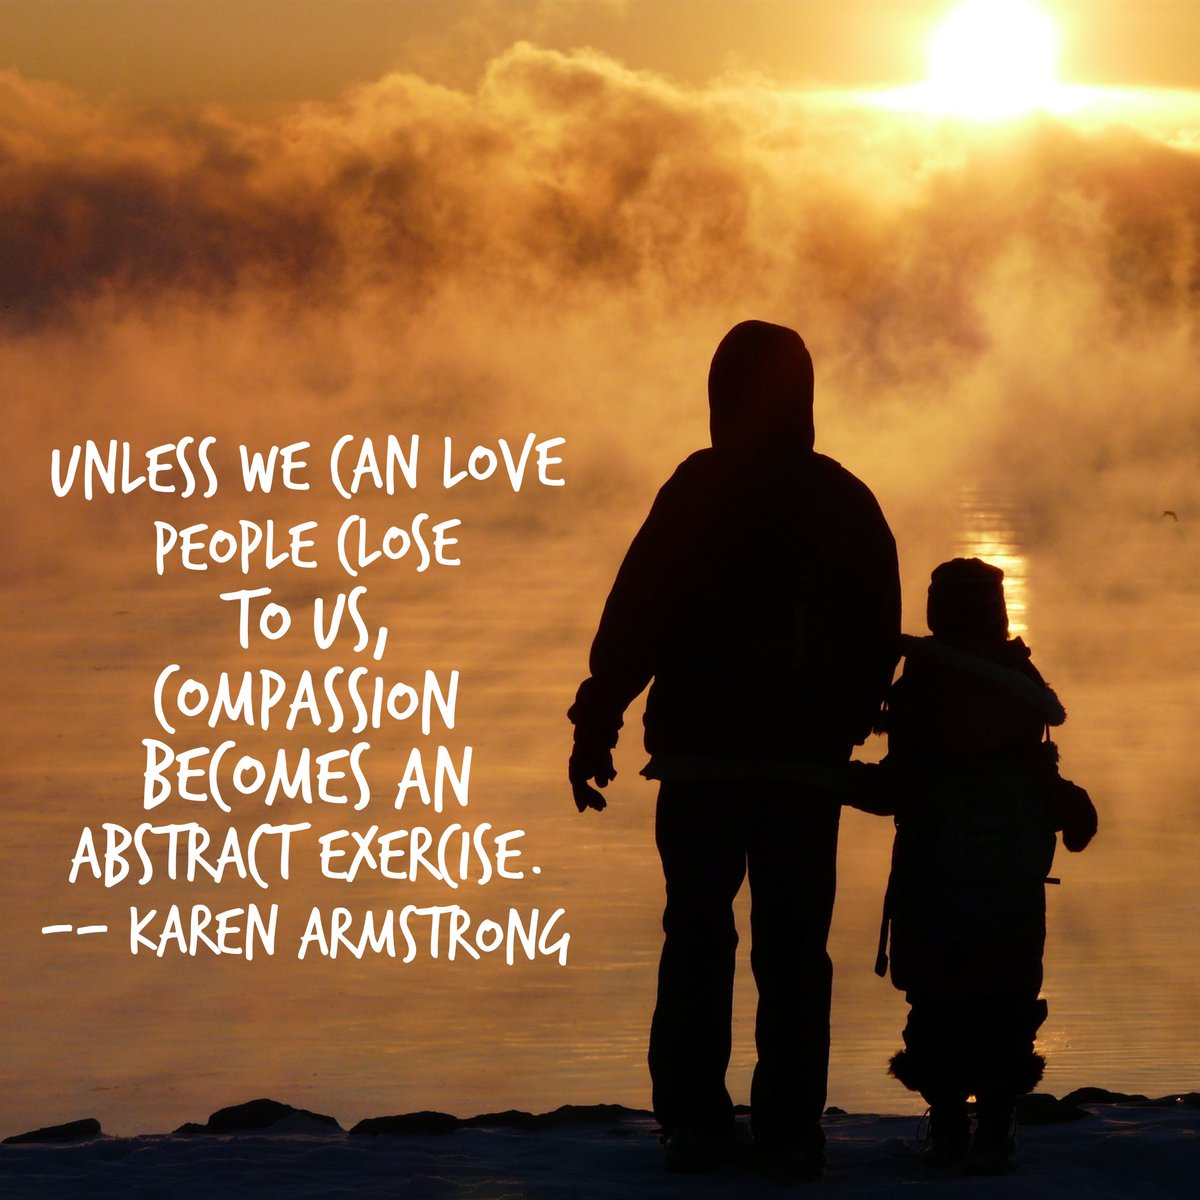 Words of wisdom from our dear friend, Karen Armstrong. @FestofFaiths #CompassionShining https://t.co/MKM6laCOXP